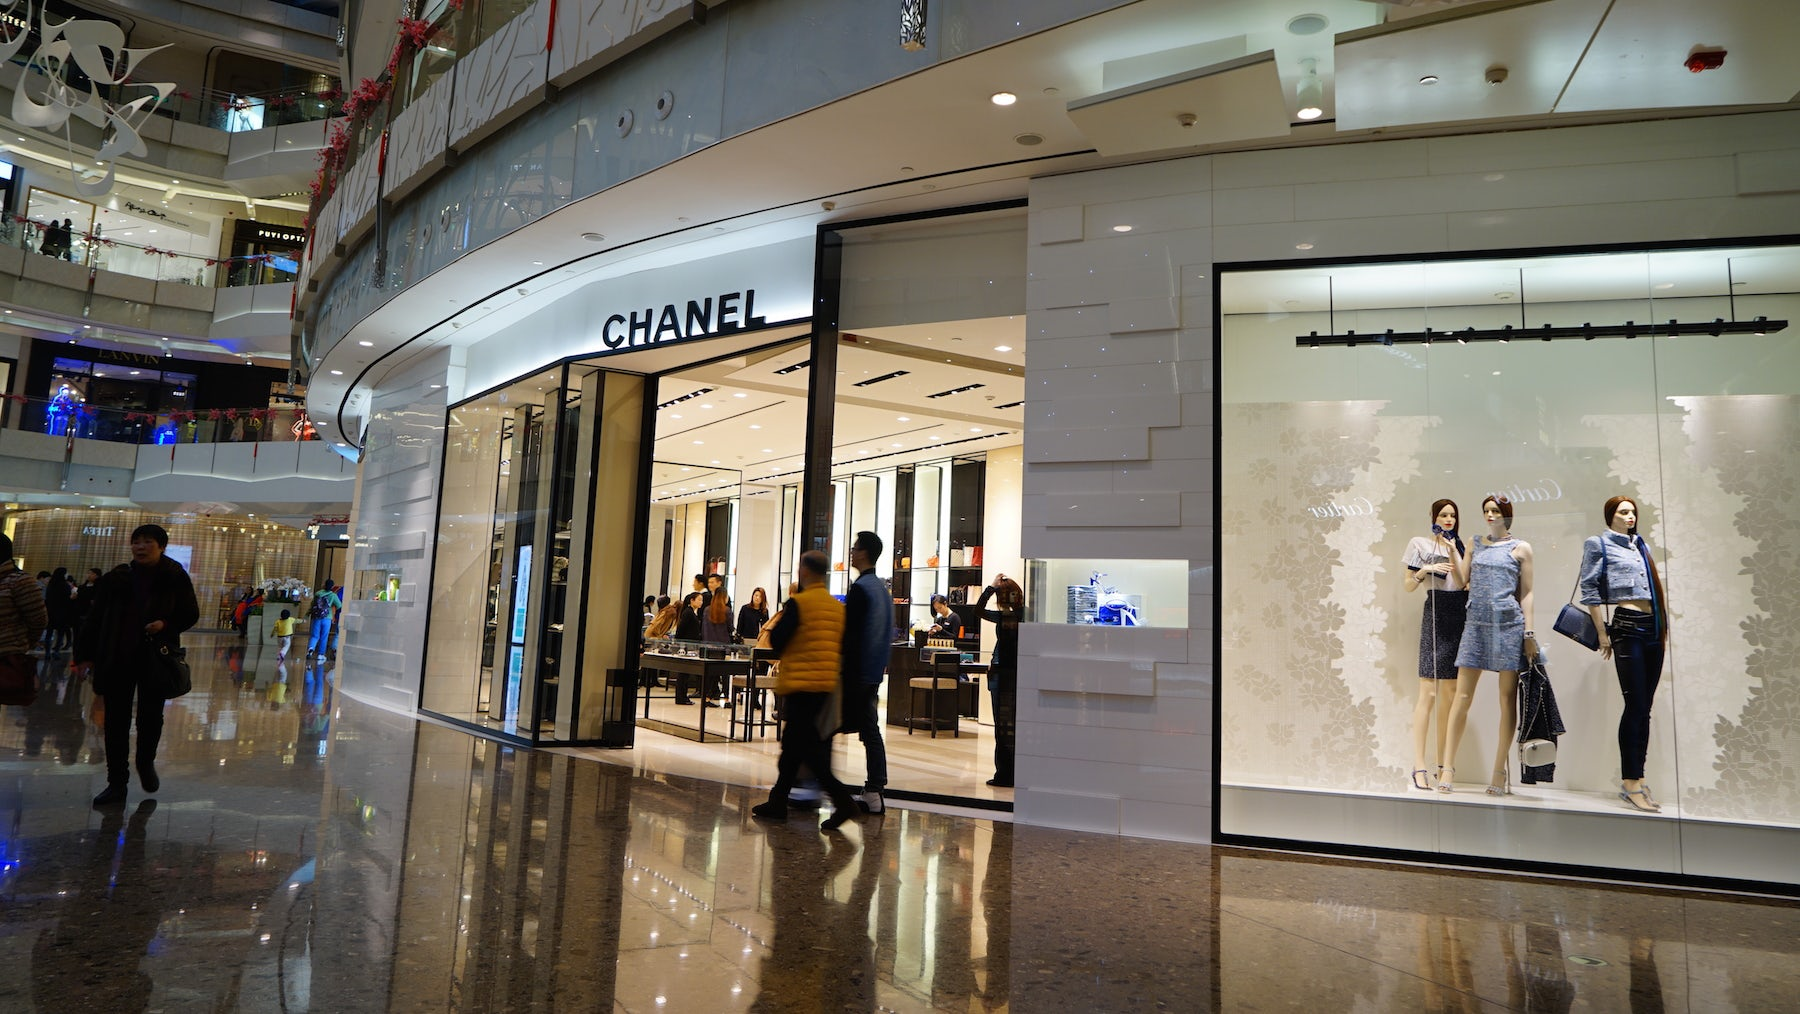 Chanel store, Shanghai | Source: Shutterstock